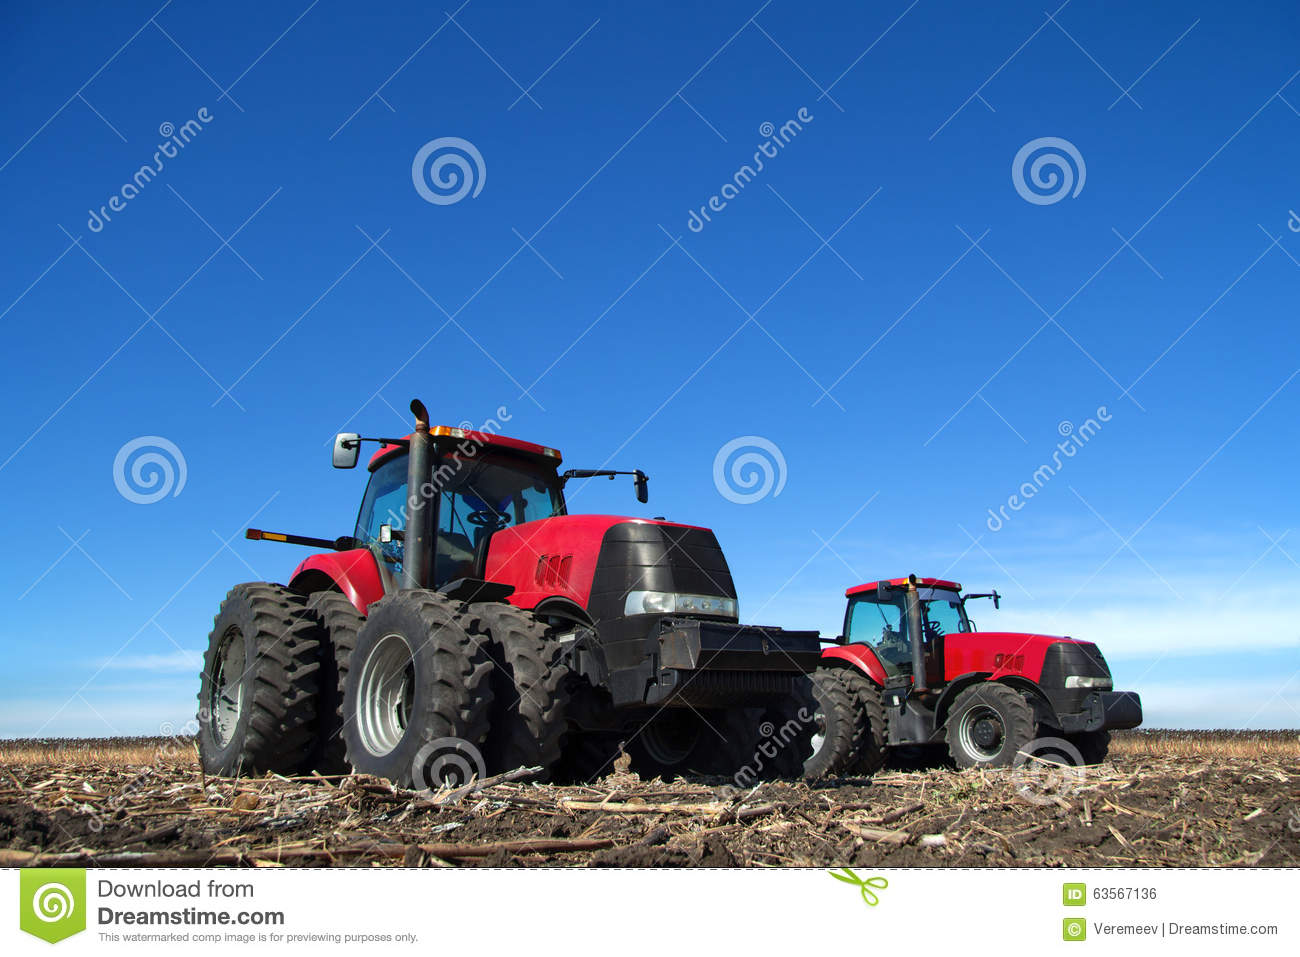 Two Tractor Cultivating The Land Stock Photo - Image: 63567136